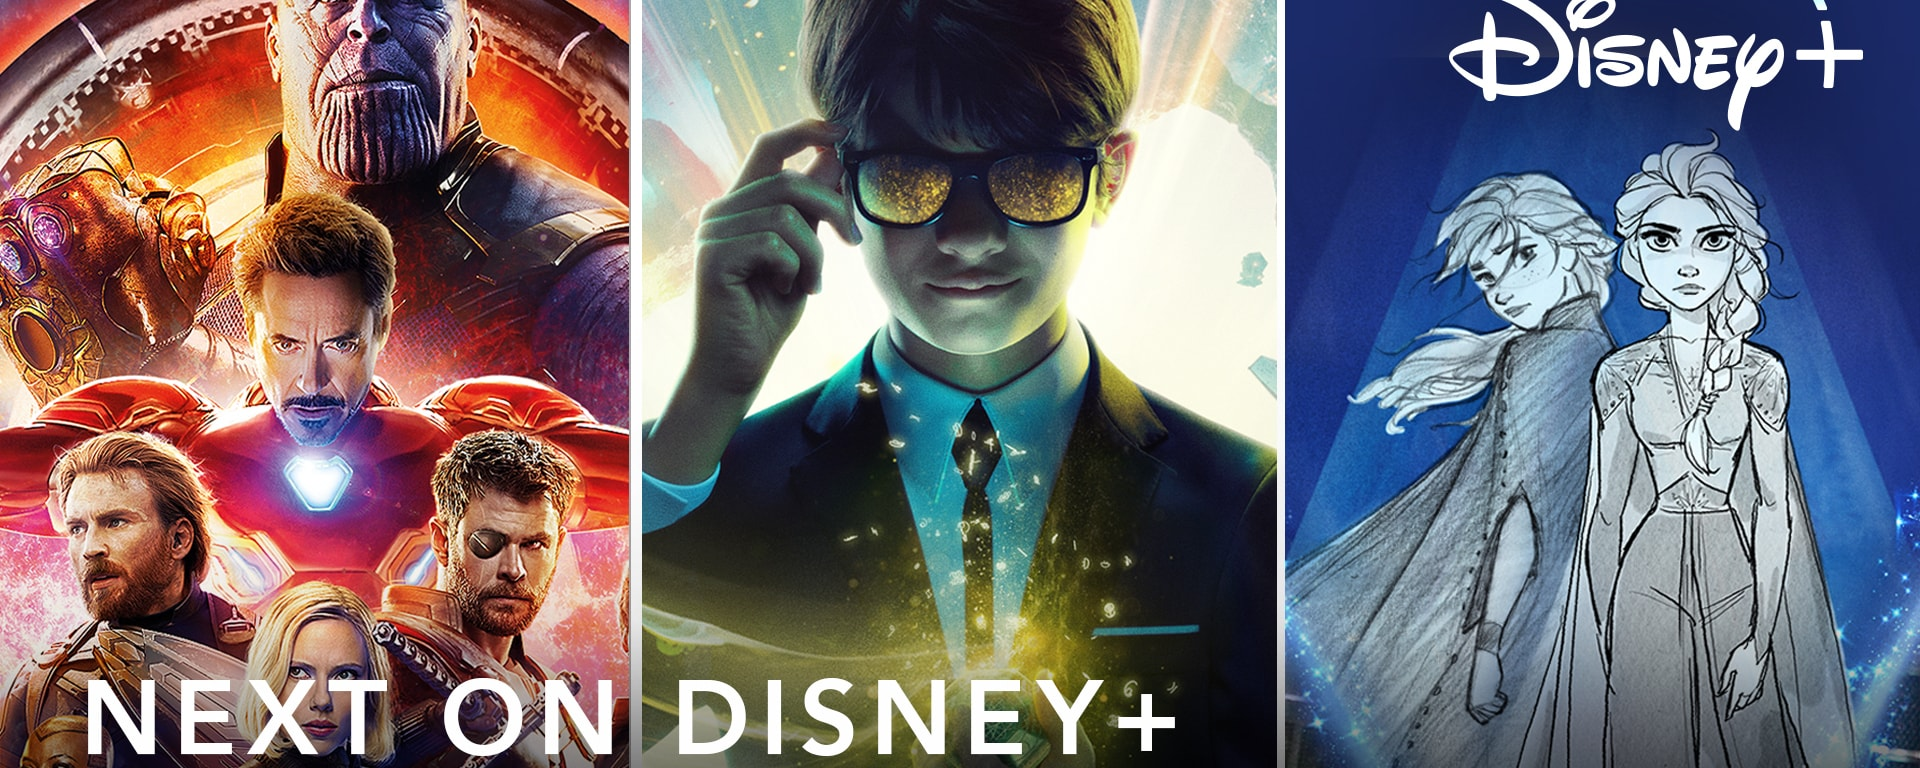 Next On Disney+ June 2020